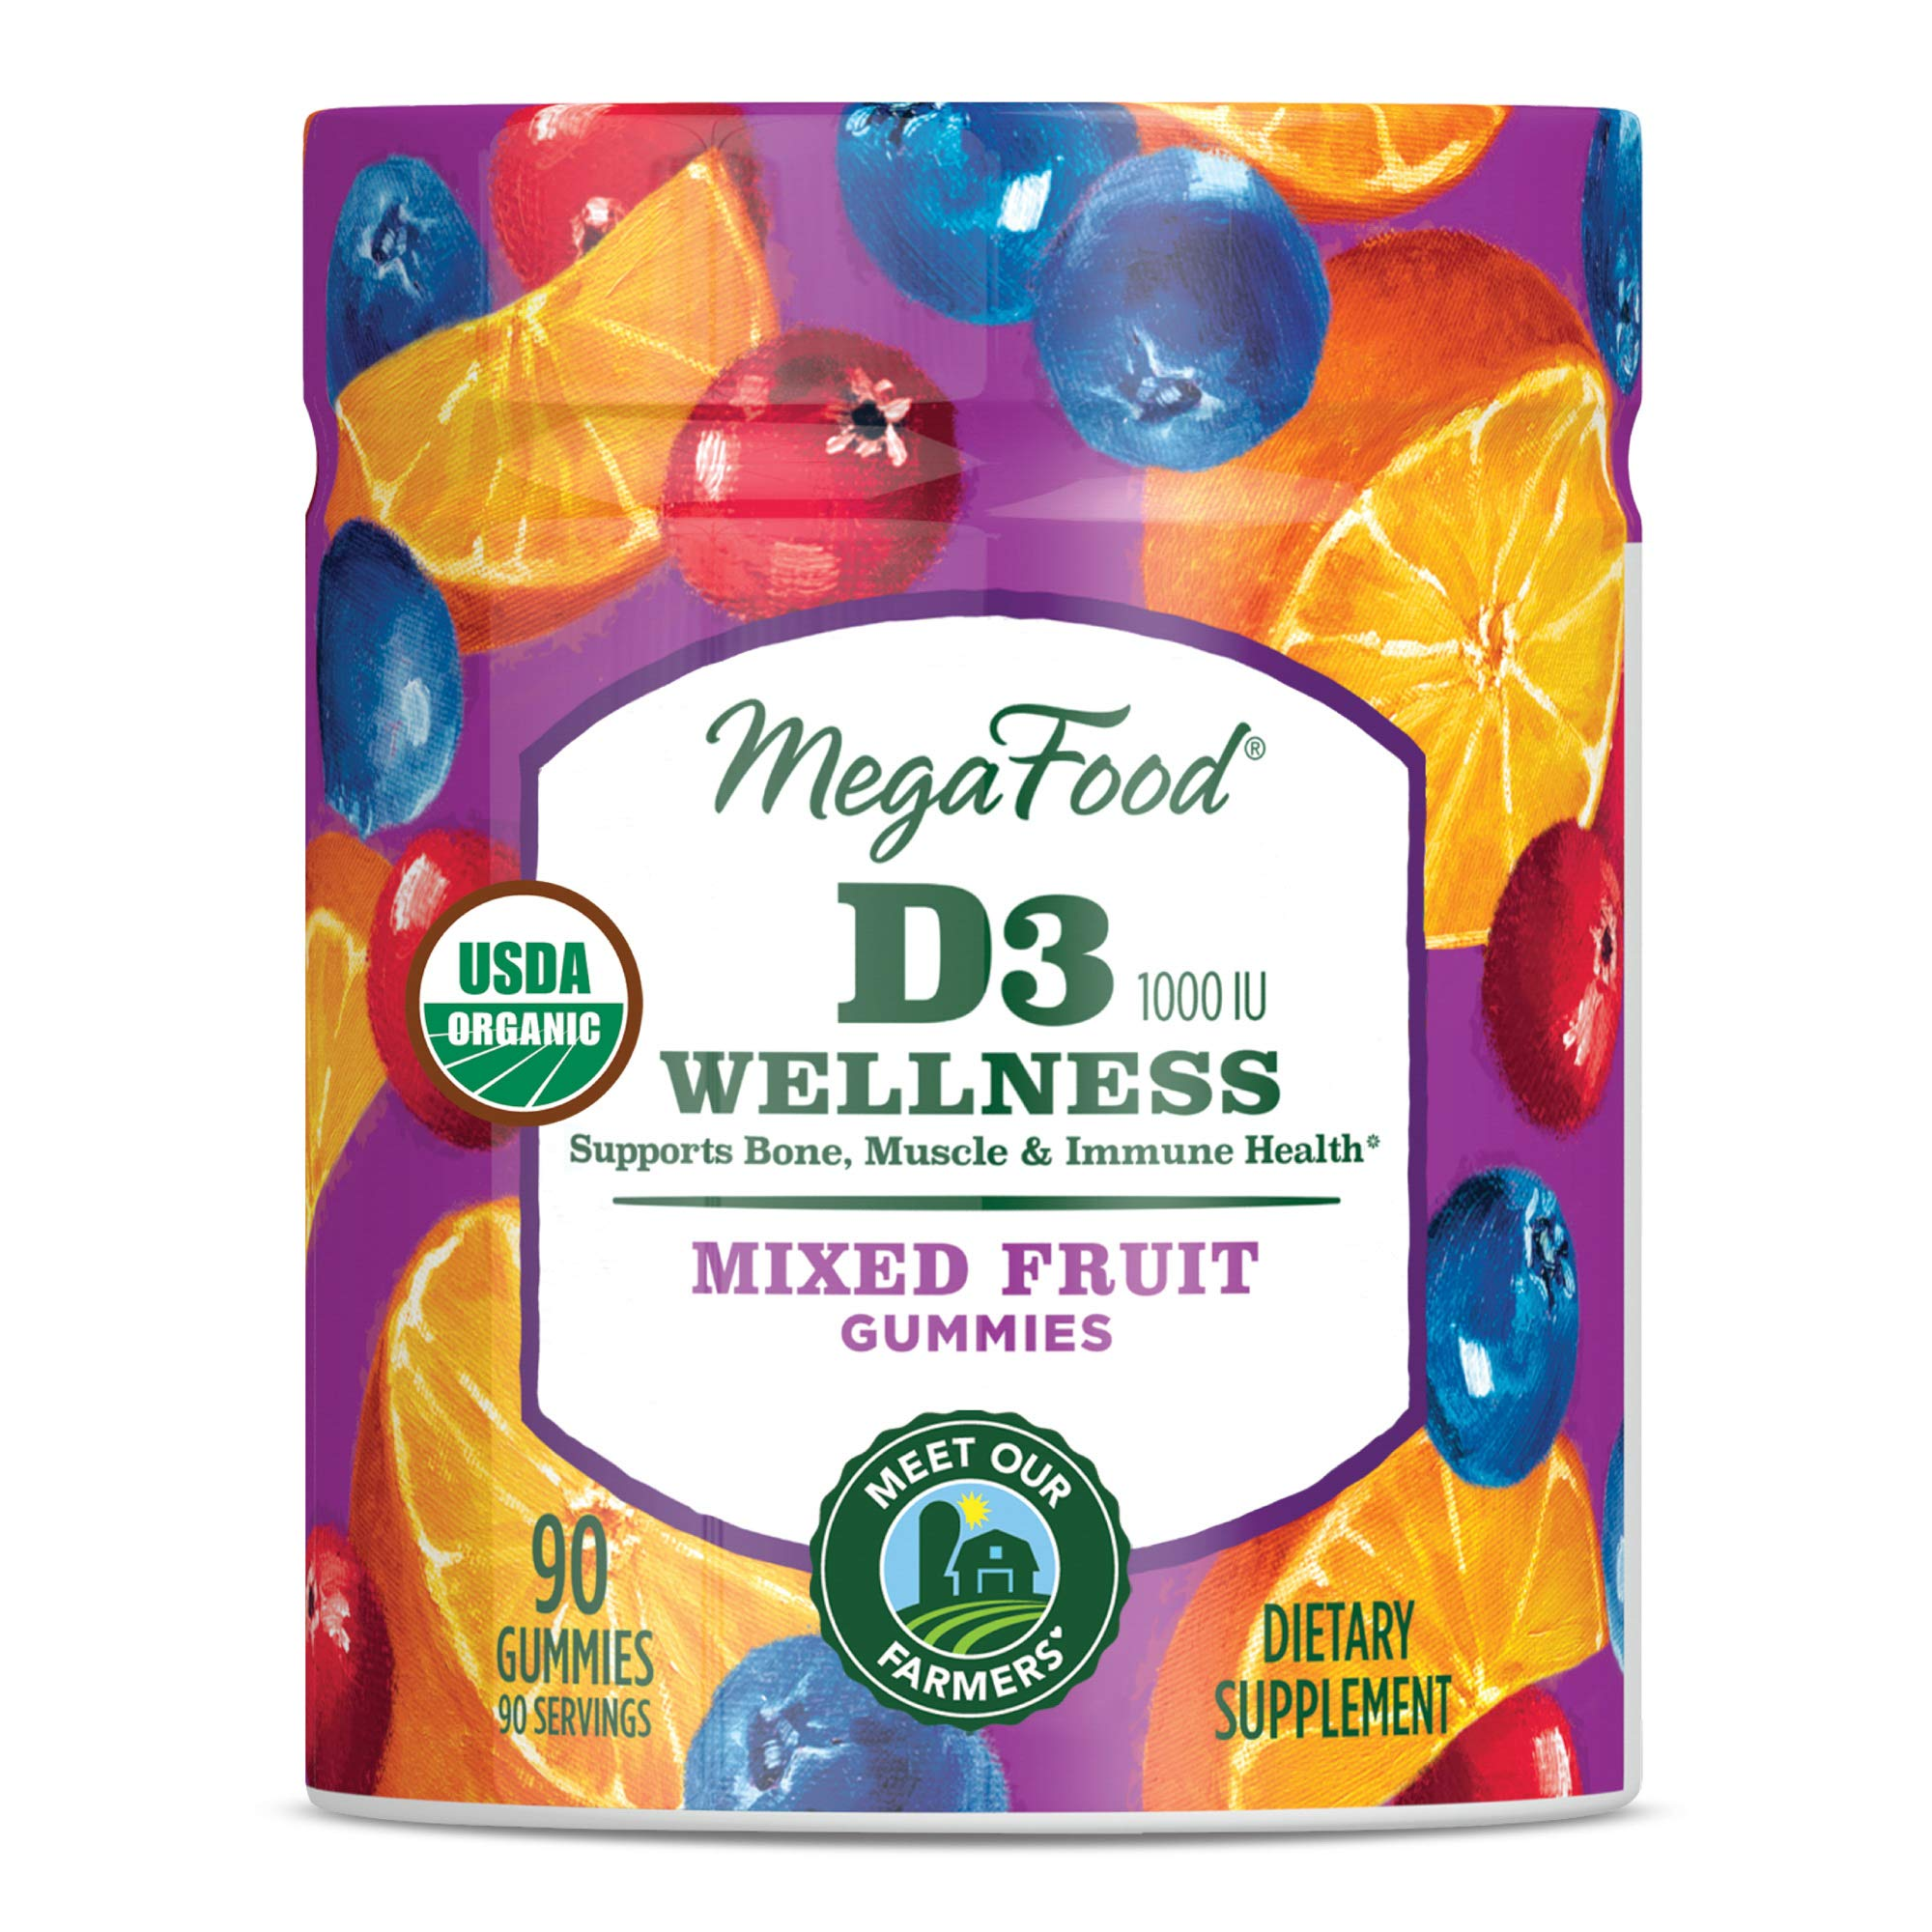 Megafood, Vitamin D3 Wellness Mixed Fruit Organic, 90 Gummies